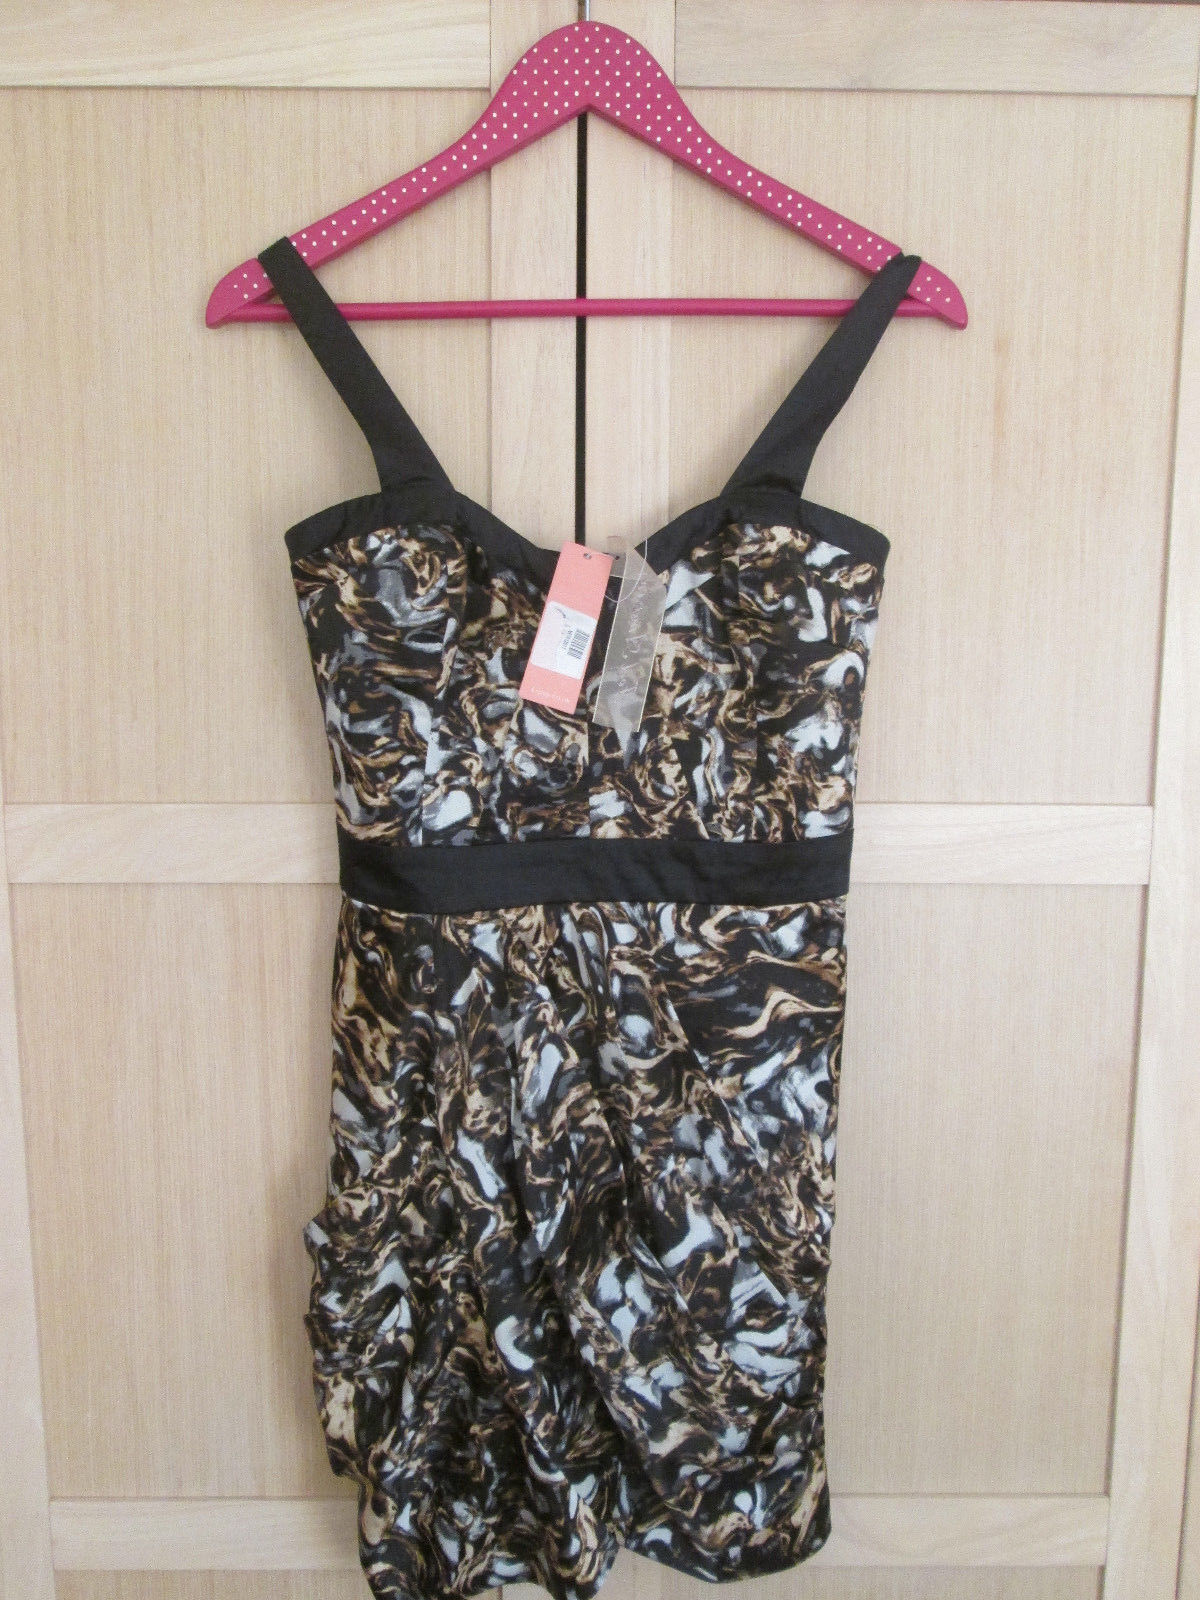 Ladies LIPSY LONDON DRESS UK SIZE 10 NEW WITH TAGS RRP